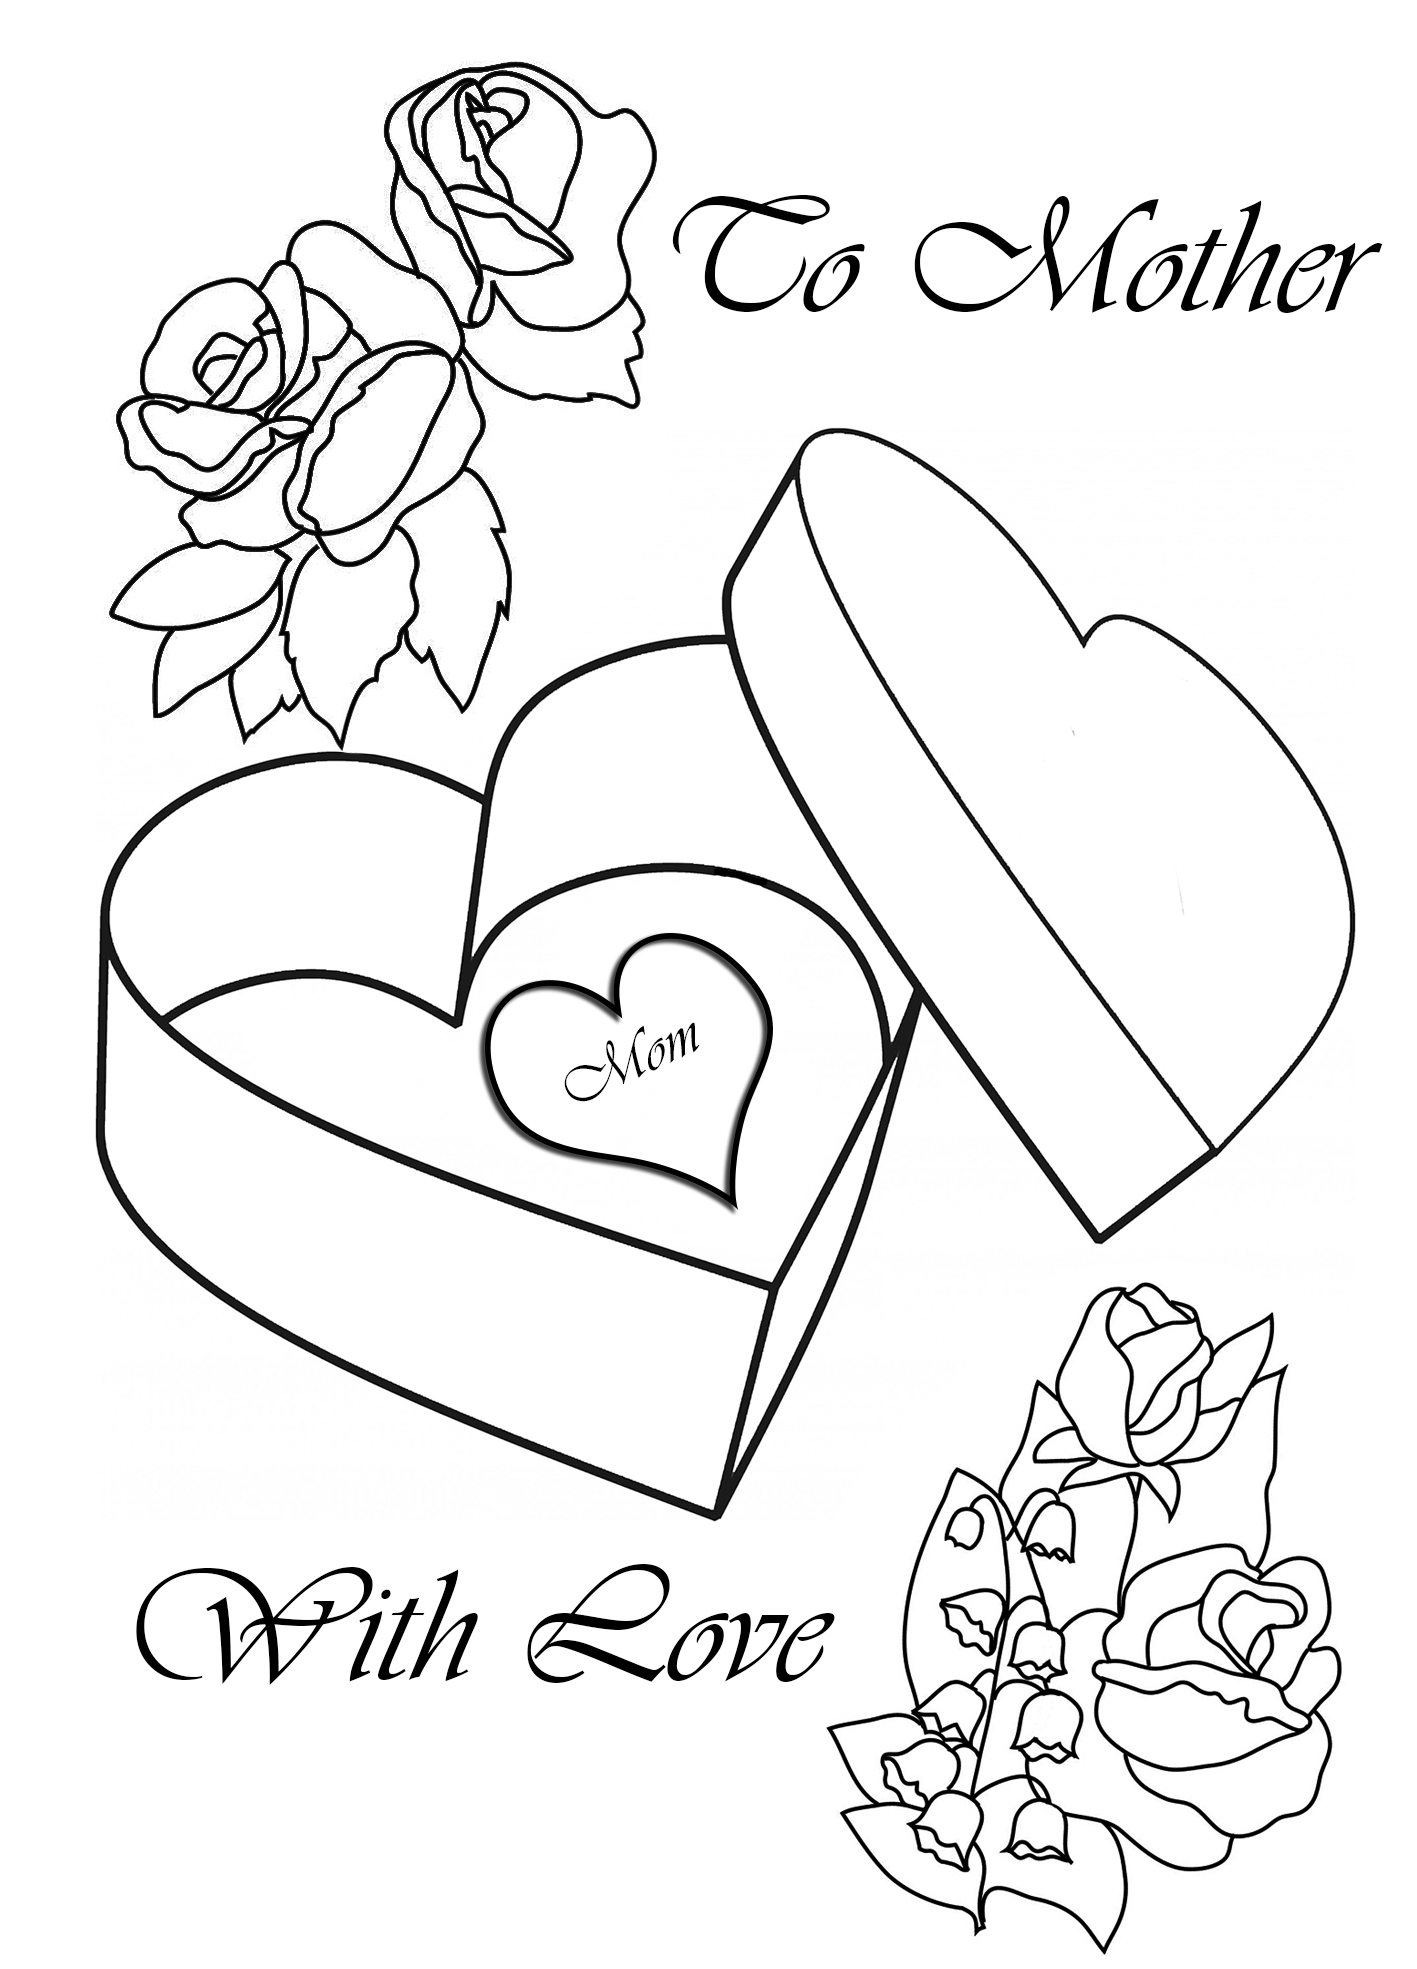 to mother with love coloring pages